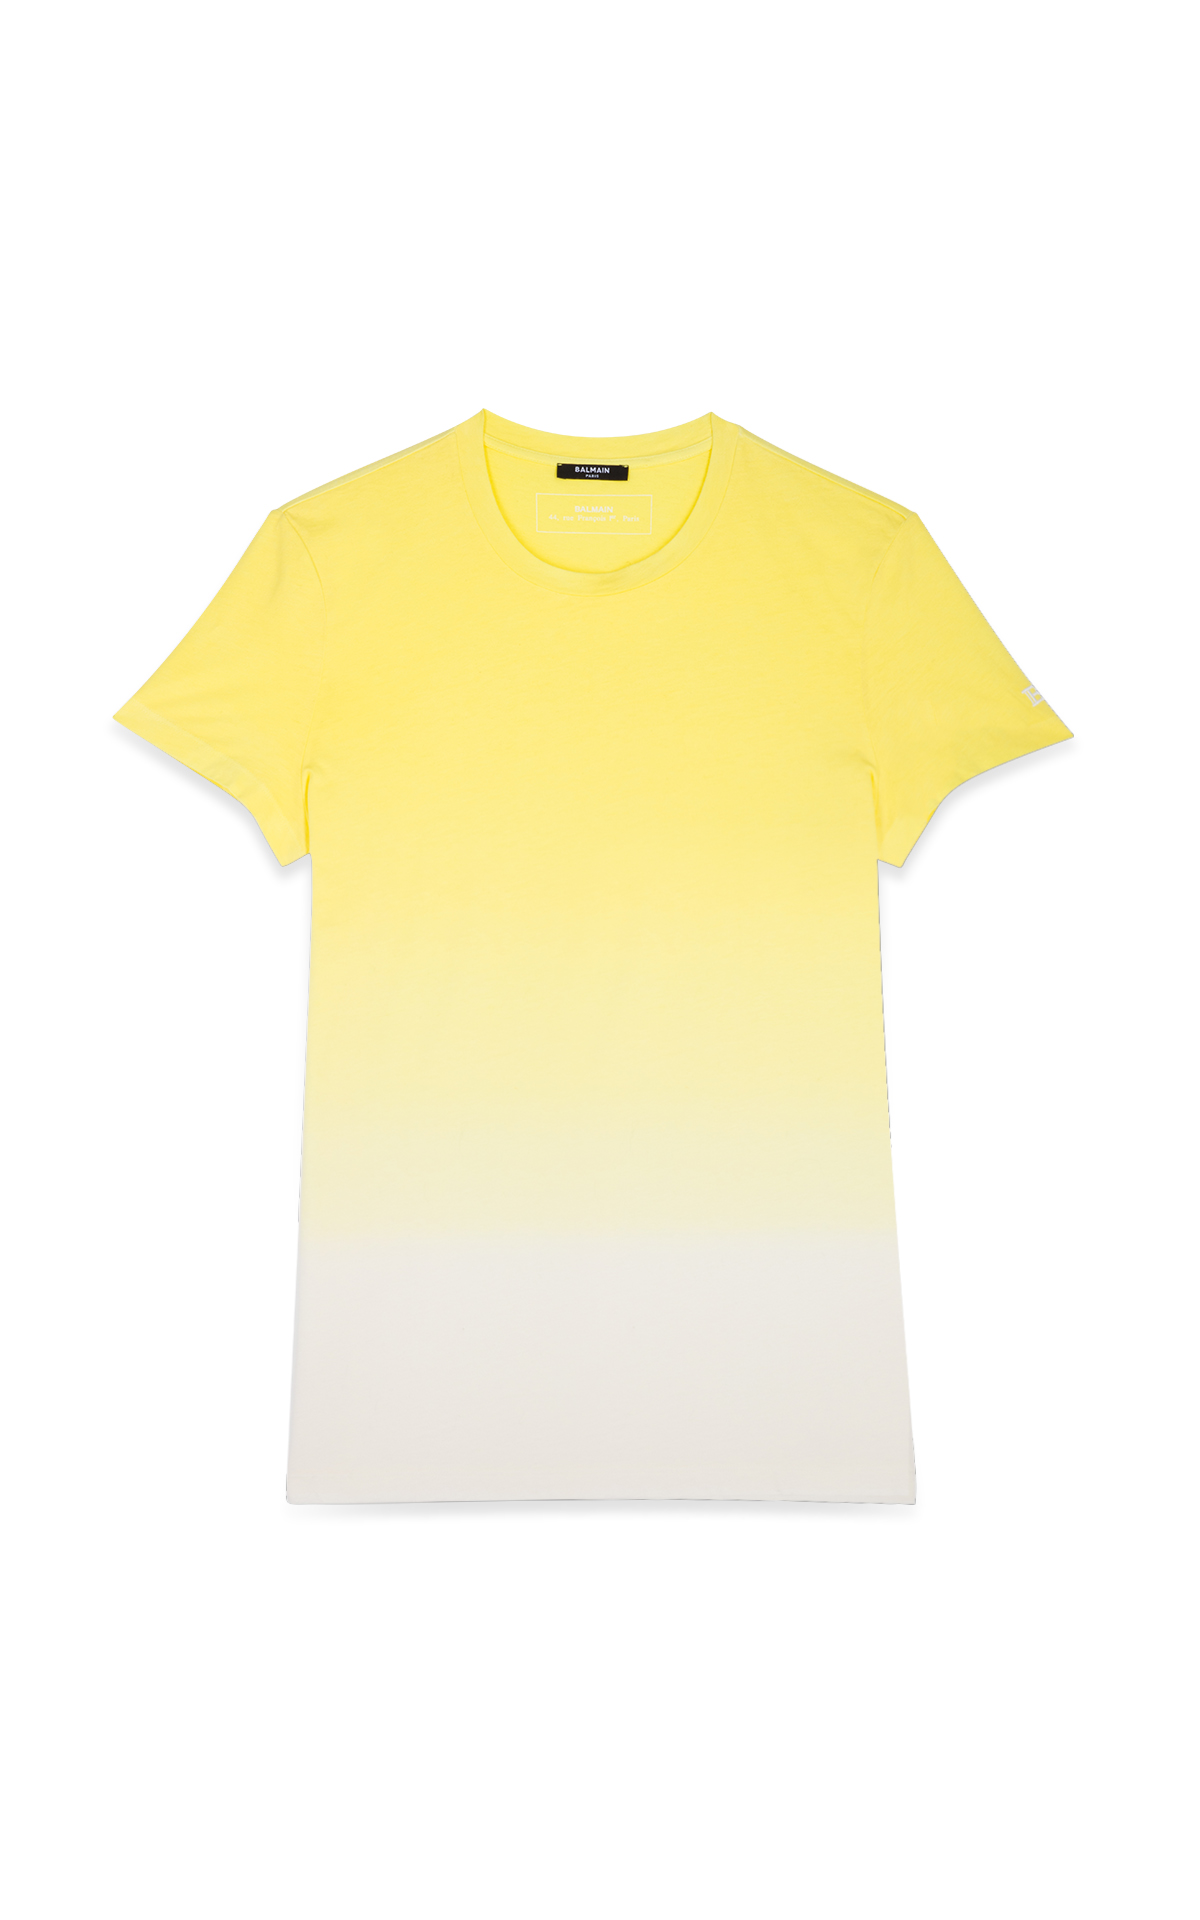 La Vallée Village Balmain yellow t-shirt